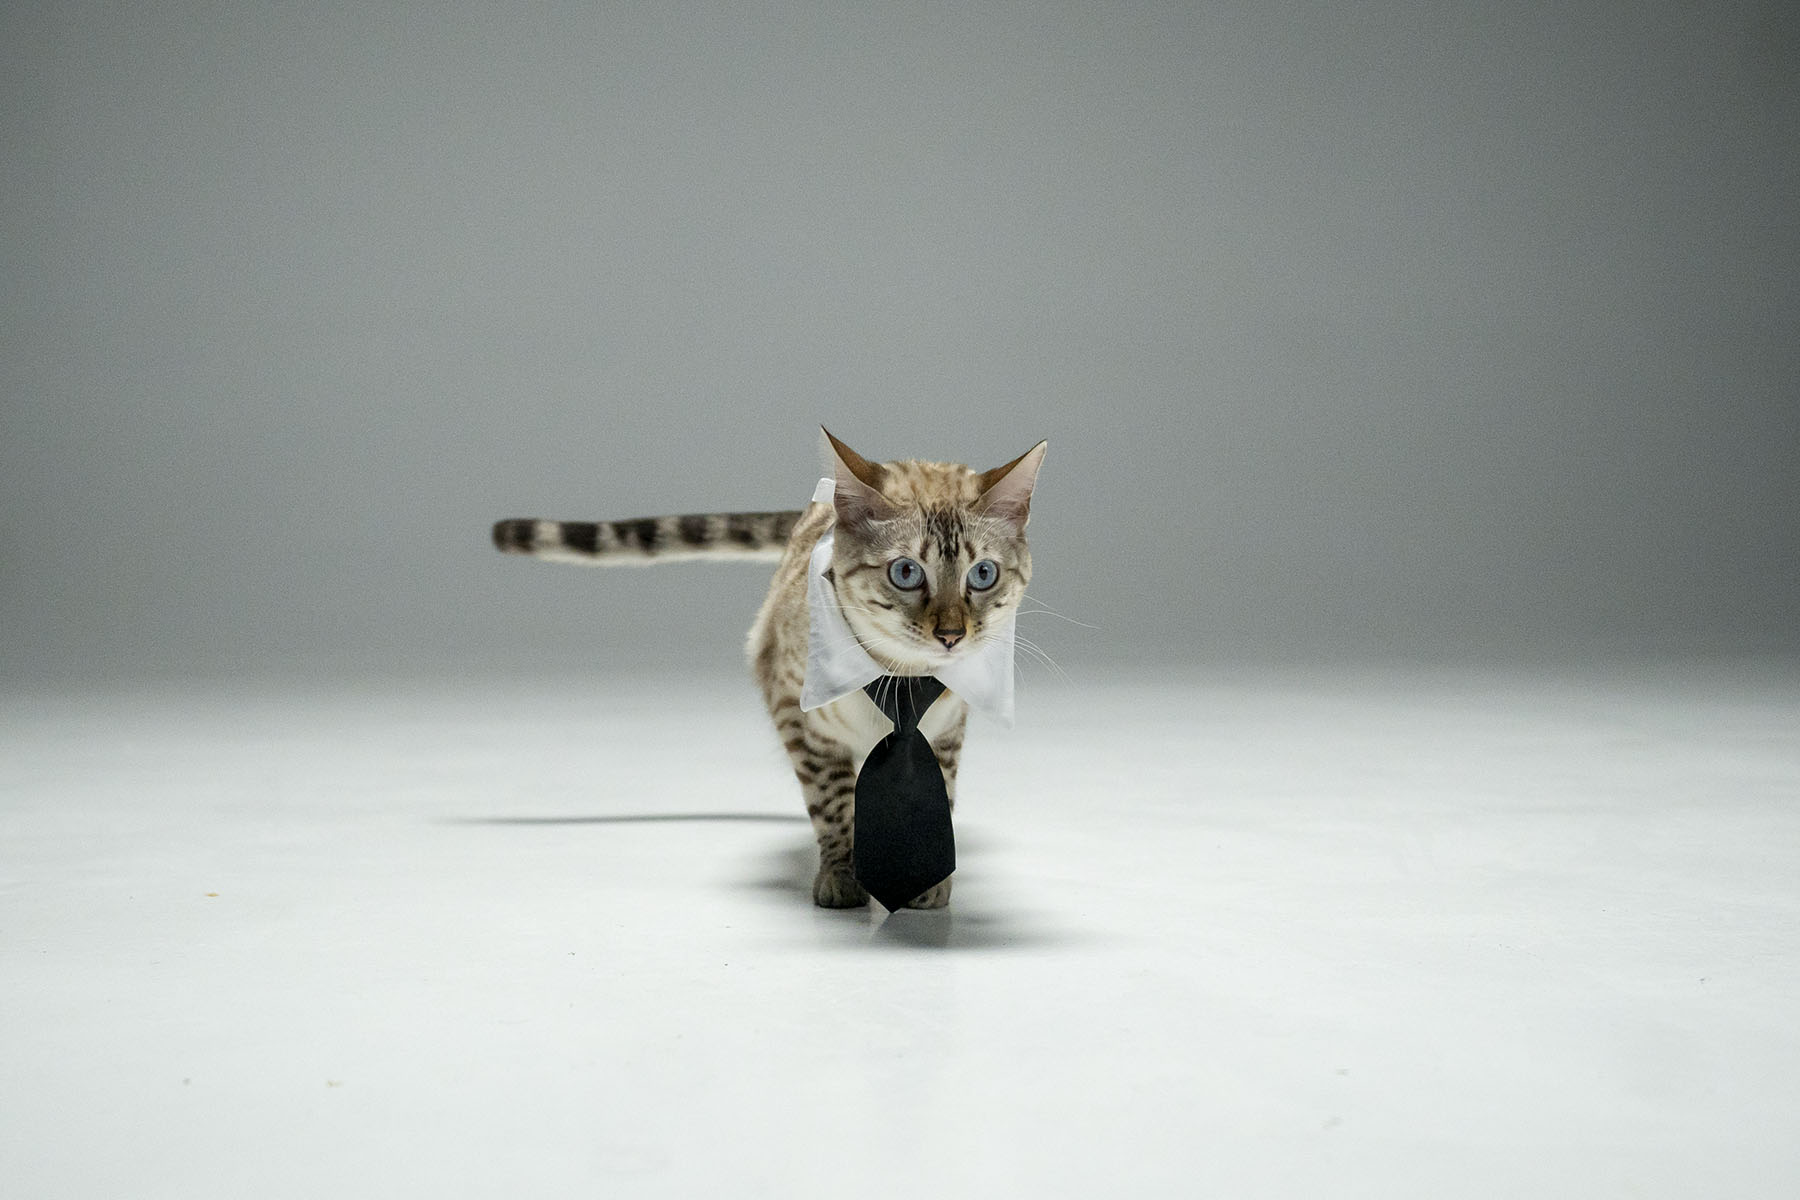 Cat with tie (Variant 1)